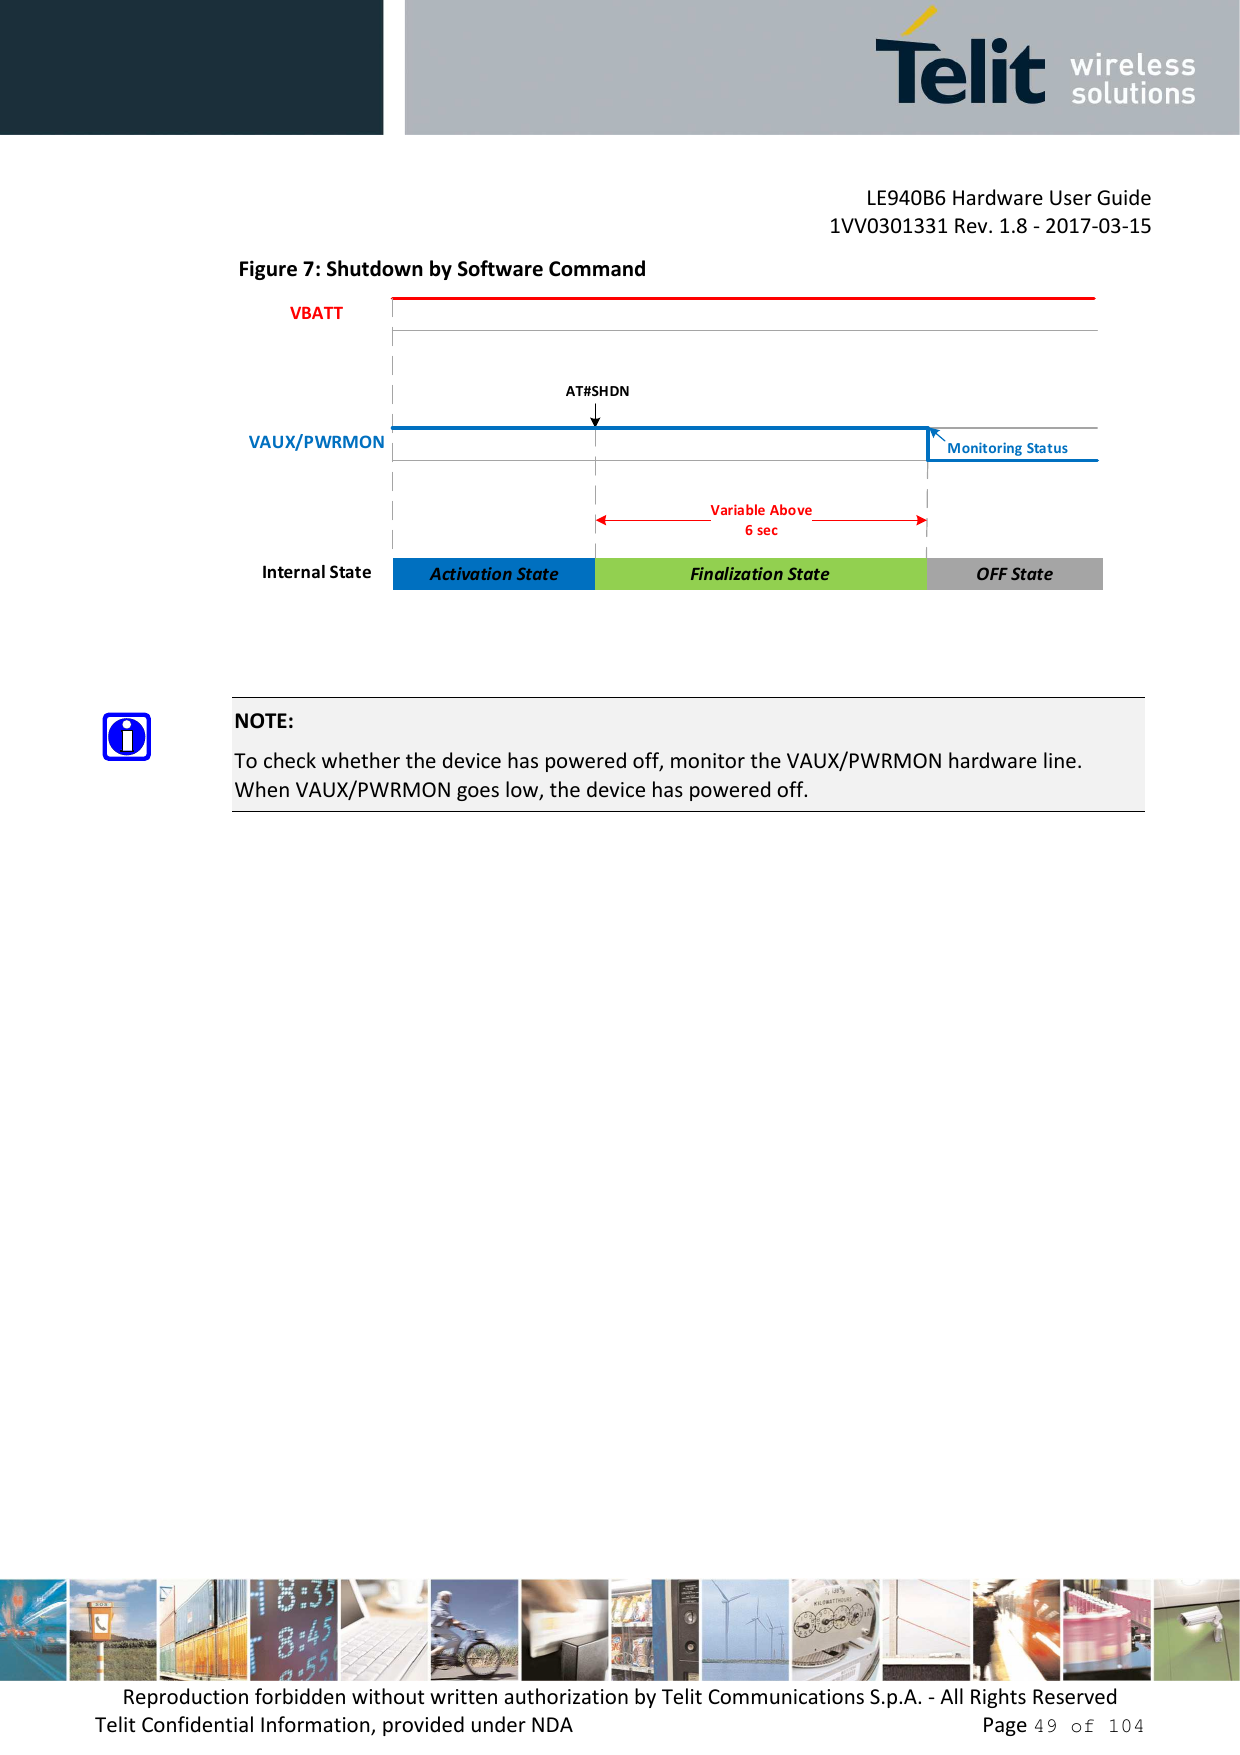 LE940B6 Hardware User Guide     1VV0301331 Rev. 1.8 - 2017-03-15 Reproduction forbidden without written authorization by Telit Communications S.p.A. - All Rights Reserved Telit Confidential Information, provided under NDA                 Page 49 of 104 Figure 7: Shutdown by Software Command Finalization State OFF StateInternal StateVAUX/PWRMONVBATTActivation StateAT#SHDNVariable Above6 secMonitoring Status      NOTE: To check whether the device has powered off, monitor the VAUX/PWRMON hardware line. When VAUX/PWRMON goes low, the device has powered off.